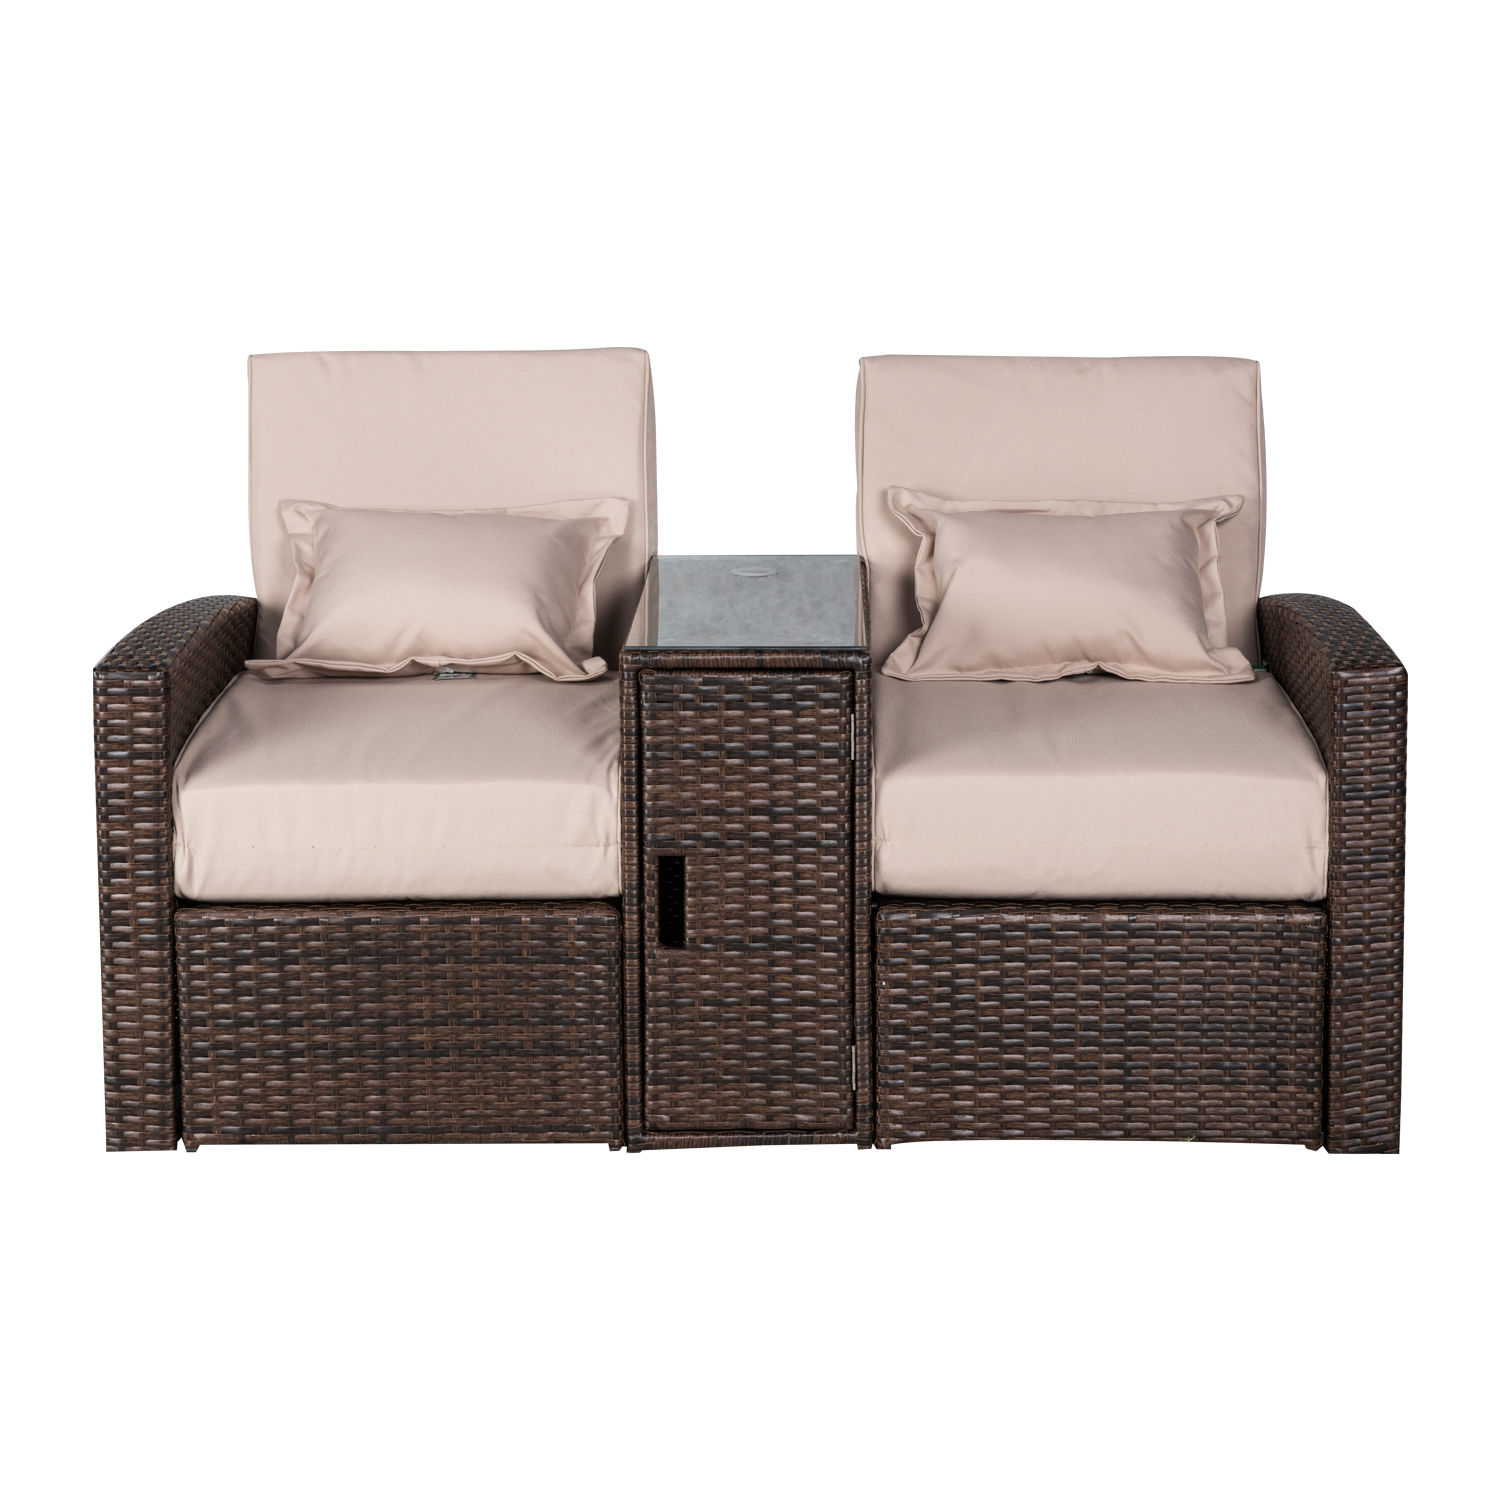 wicker chaise lounge chairs outdoor gold bedroom chair 3pc patio rattan furniture